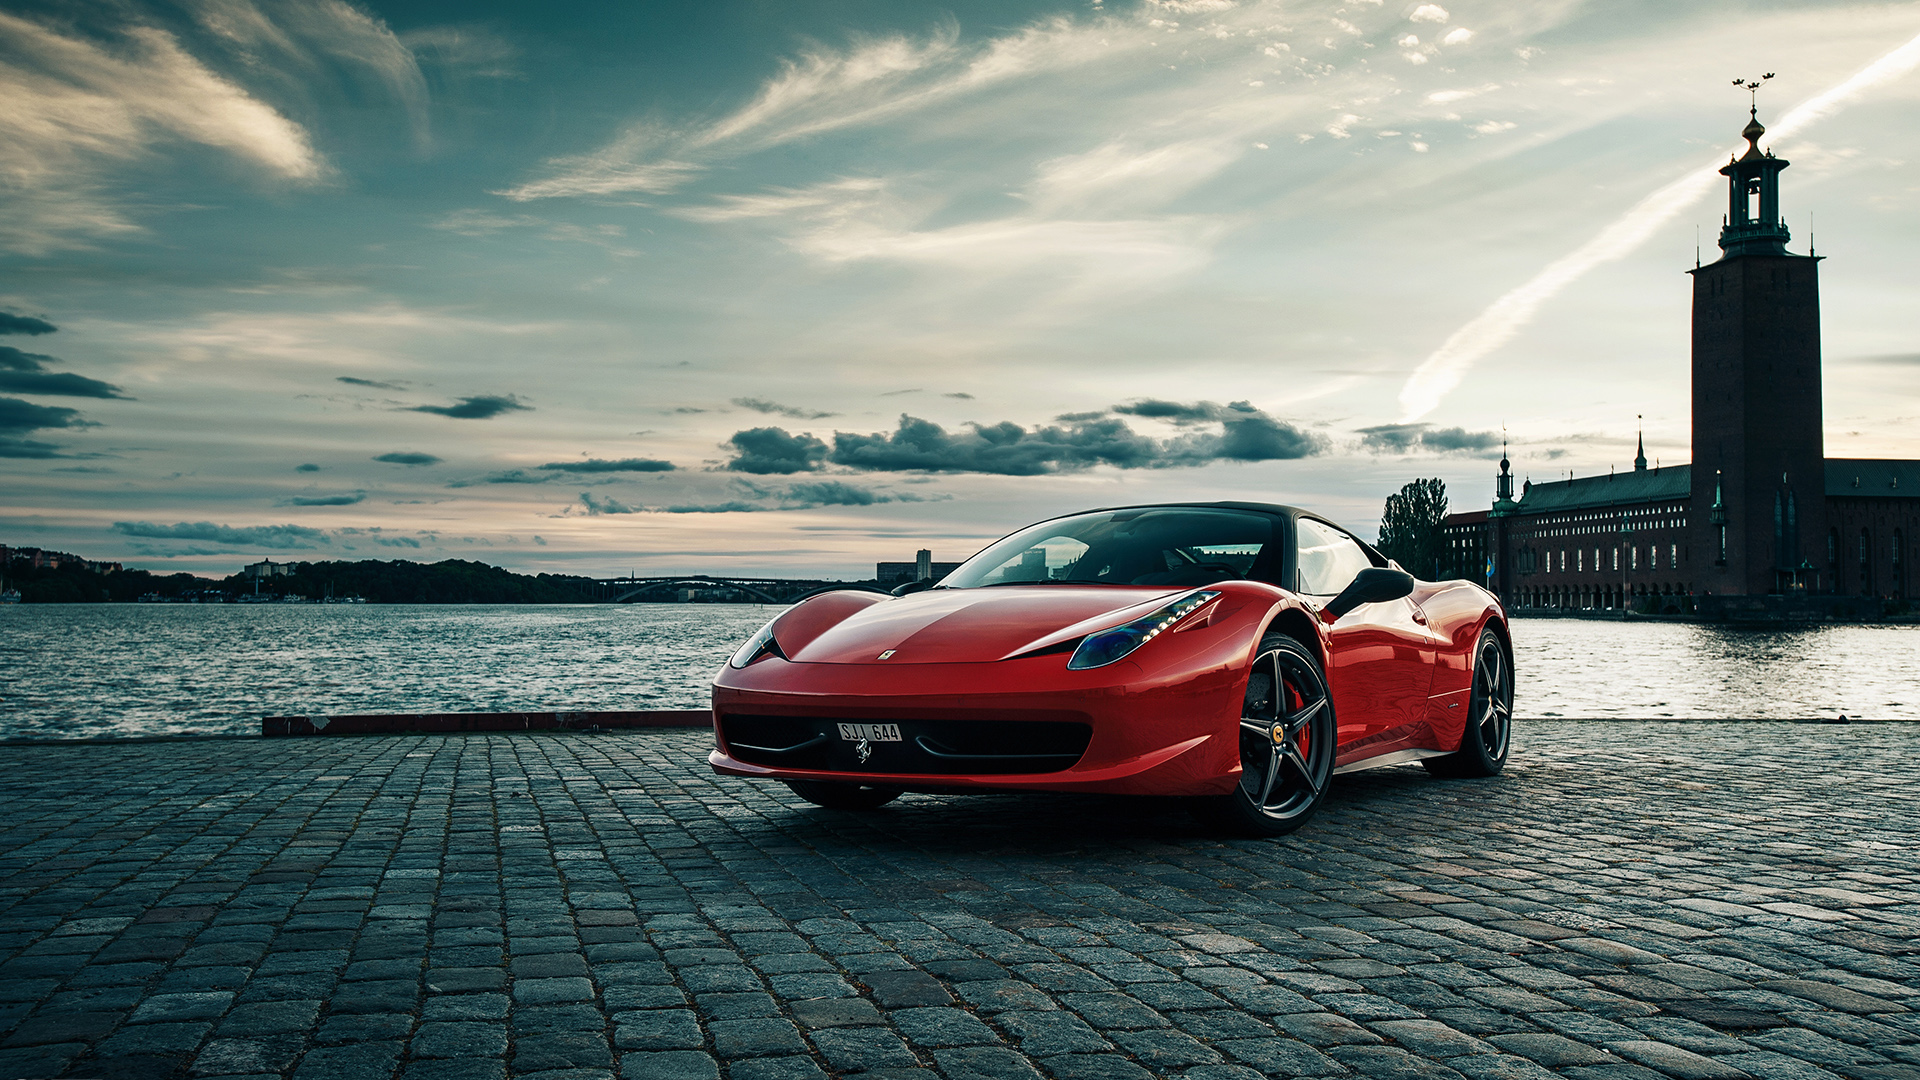 download image ferrari wallpapers - photo #20